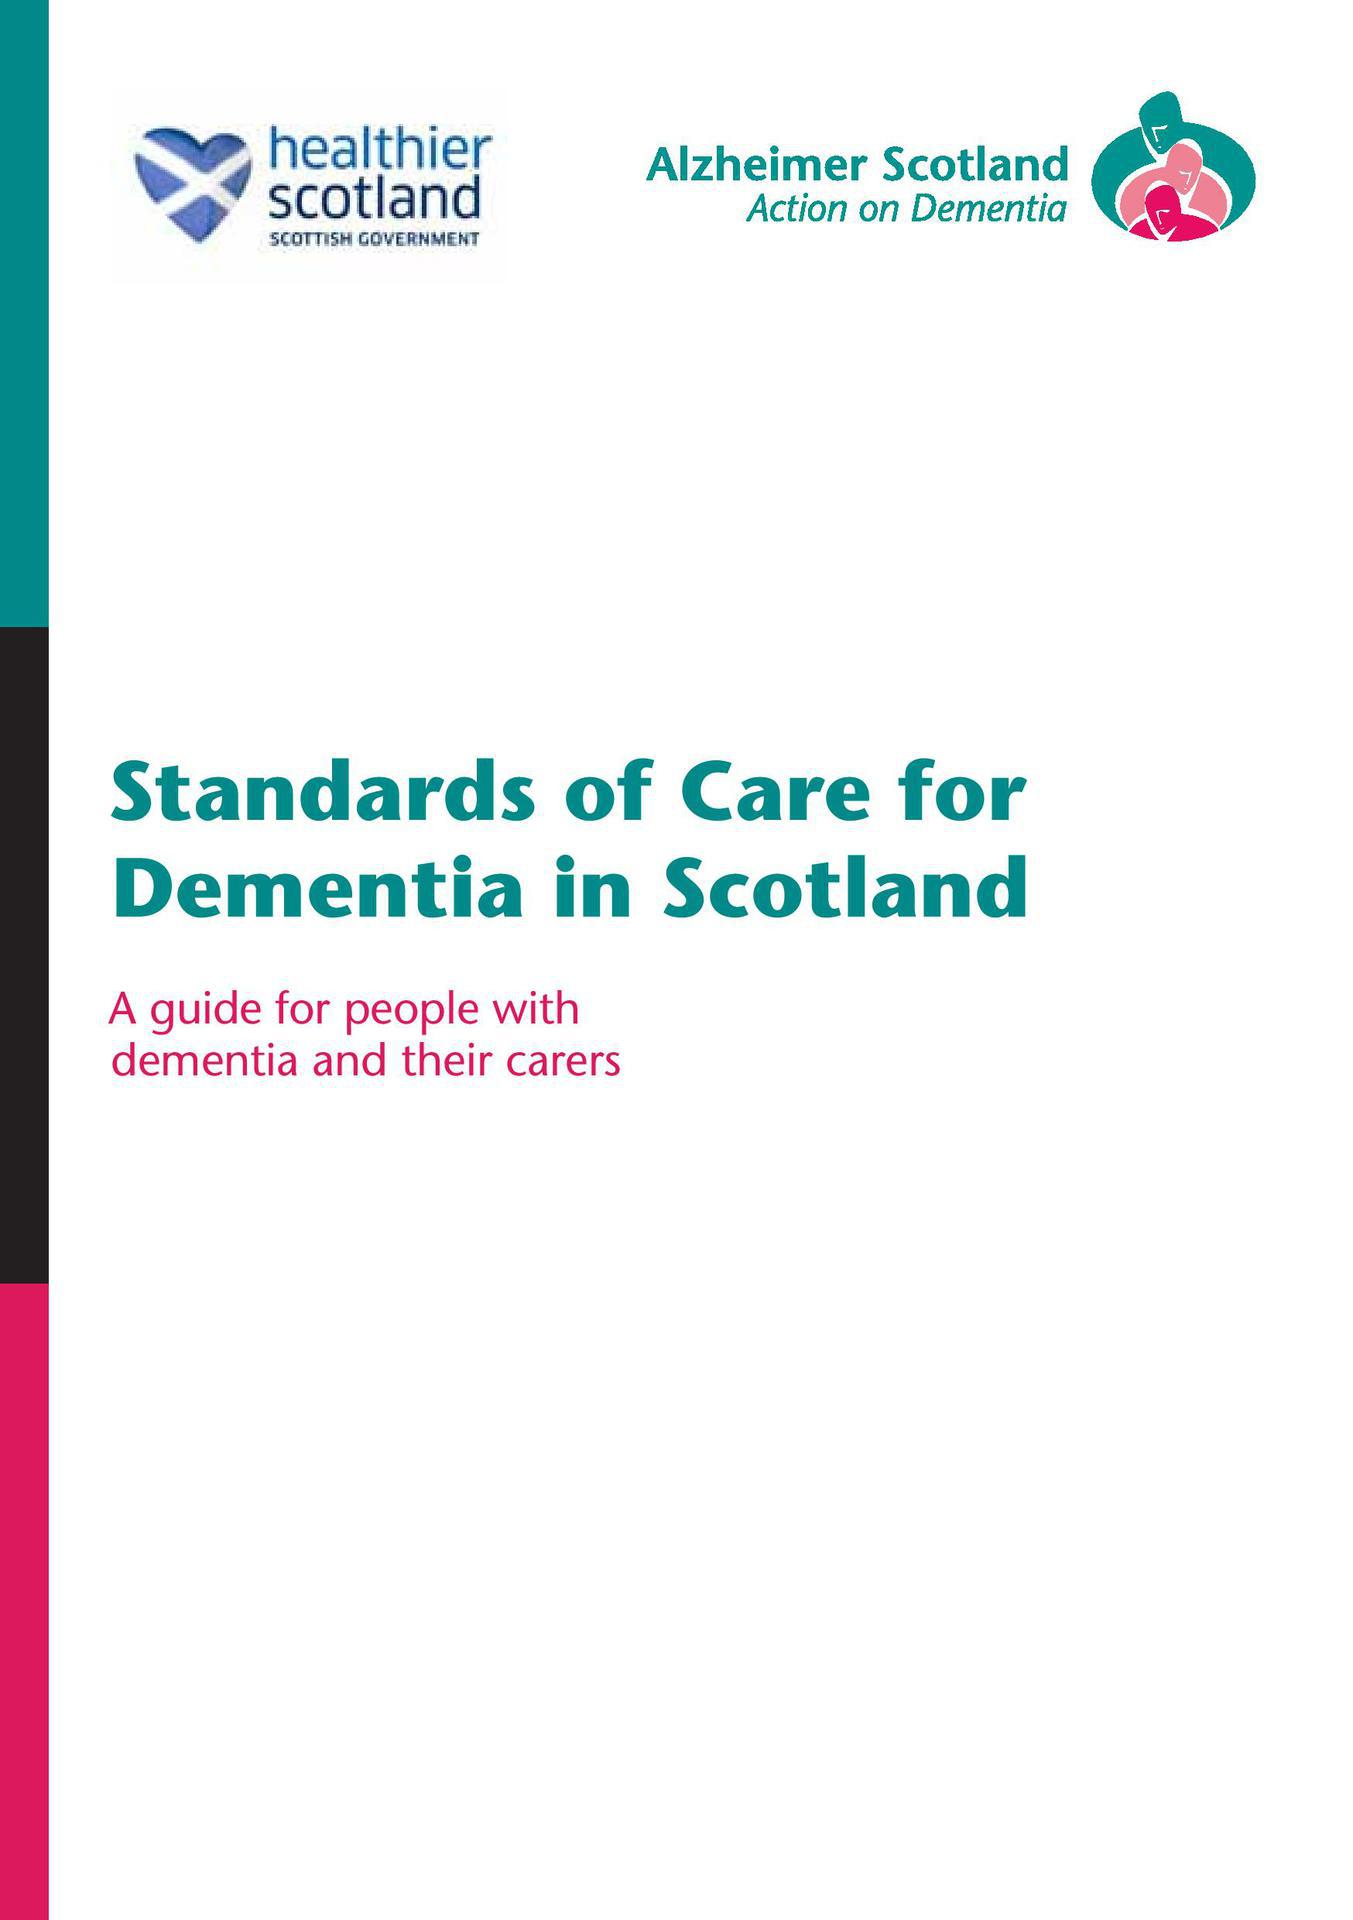 Guide to Standards of Care for Dementia in Scotland.1 page 001